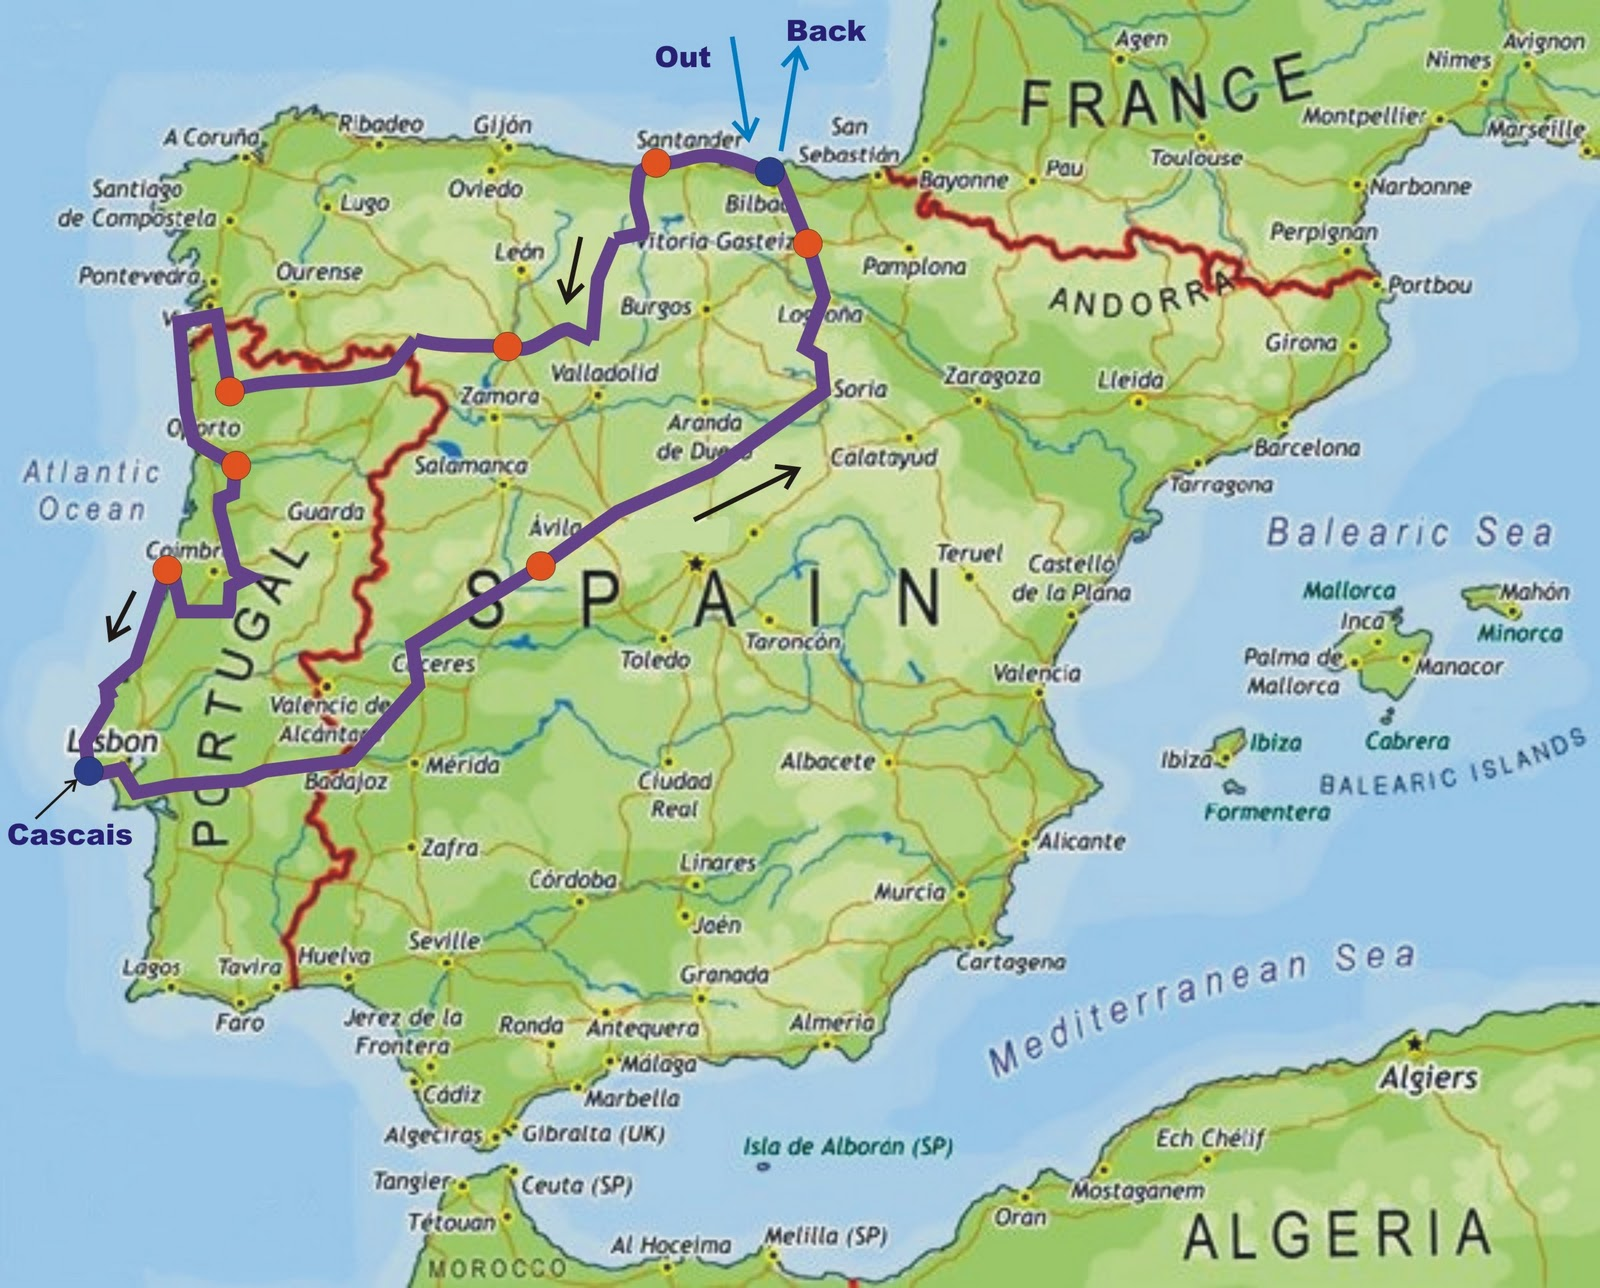 Flies In Your Teeth Plans For Bike Trips - Portugal map hd